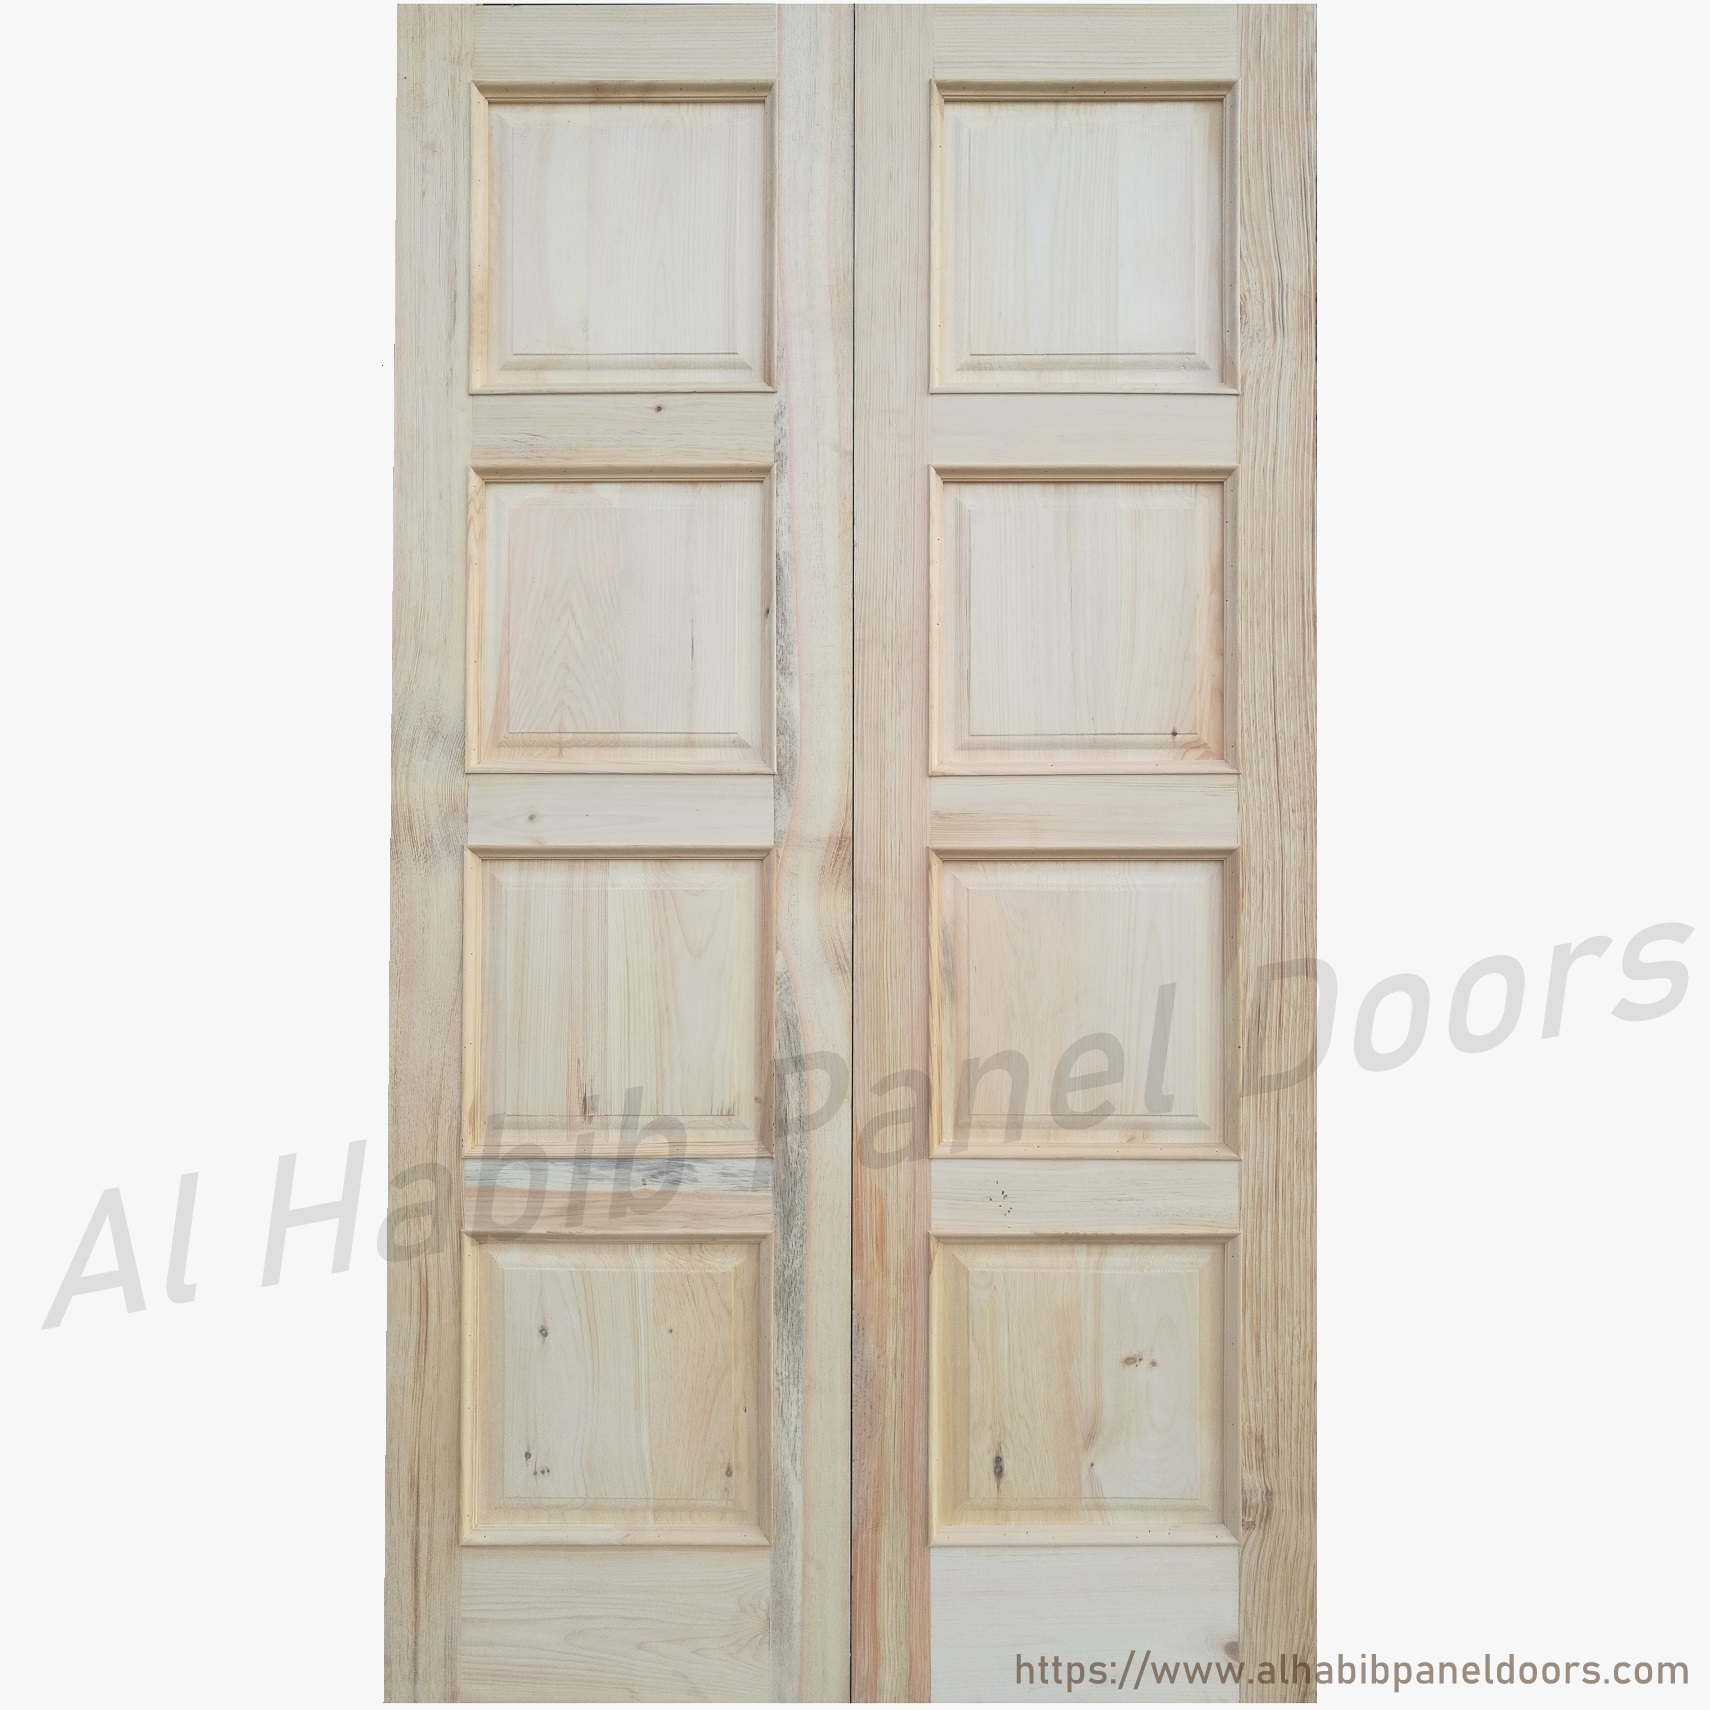 Main double door hpd327 main doors al habib panel doors for Main entrance doors design for home